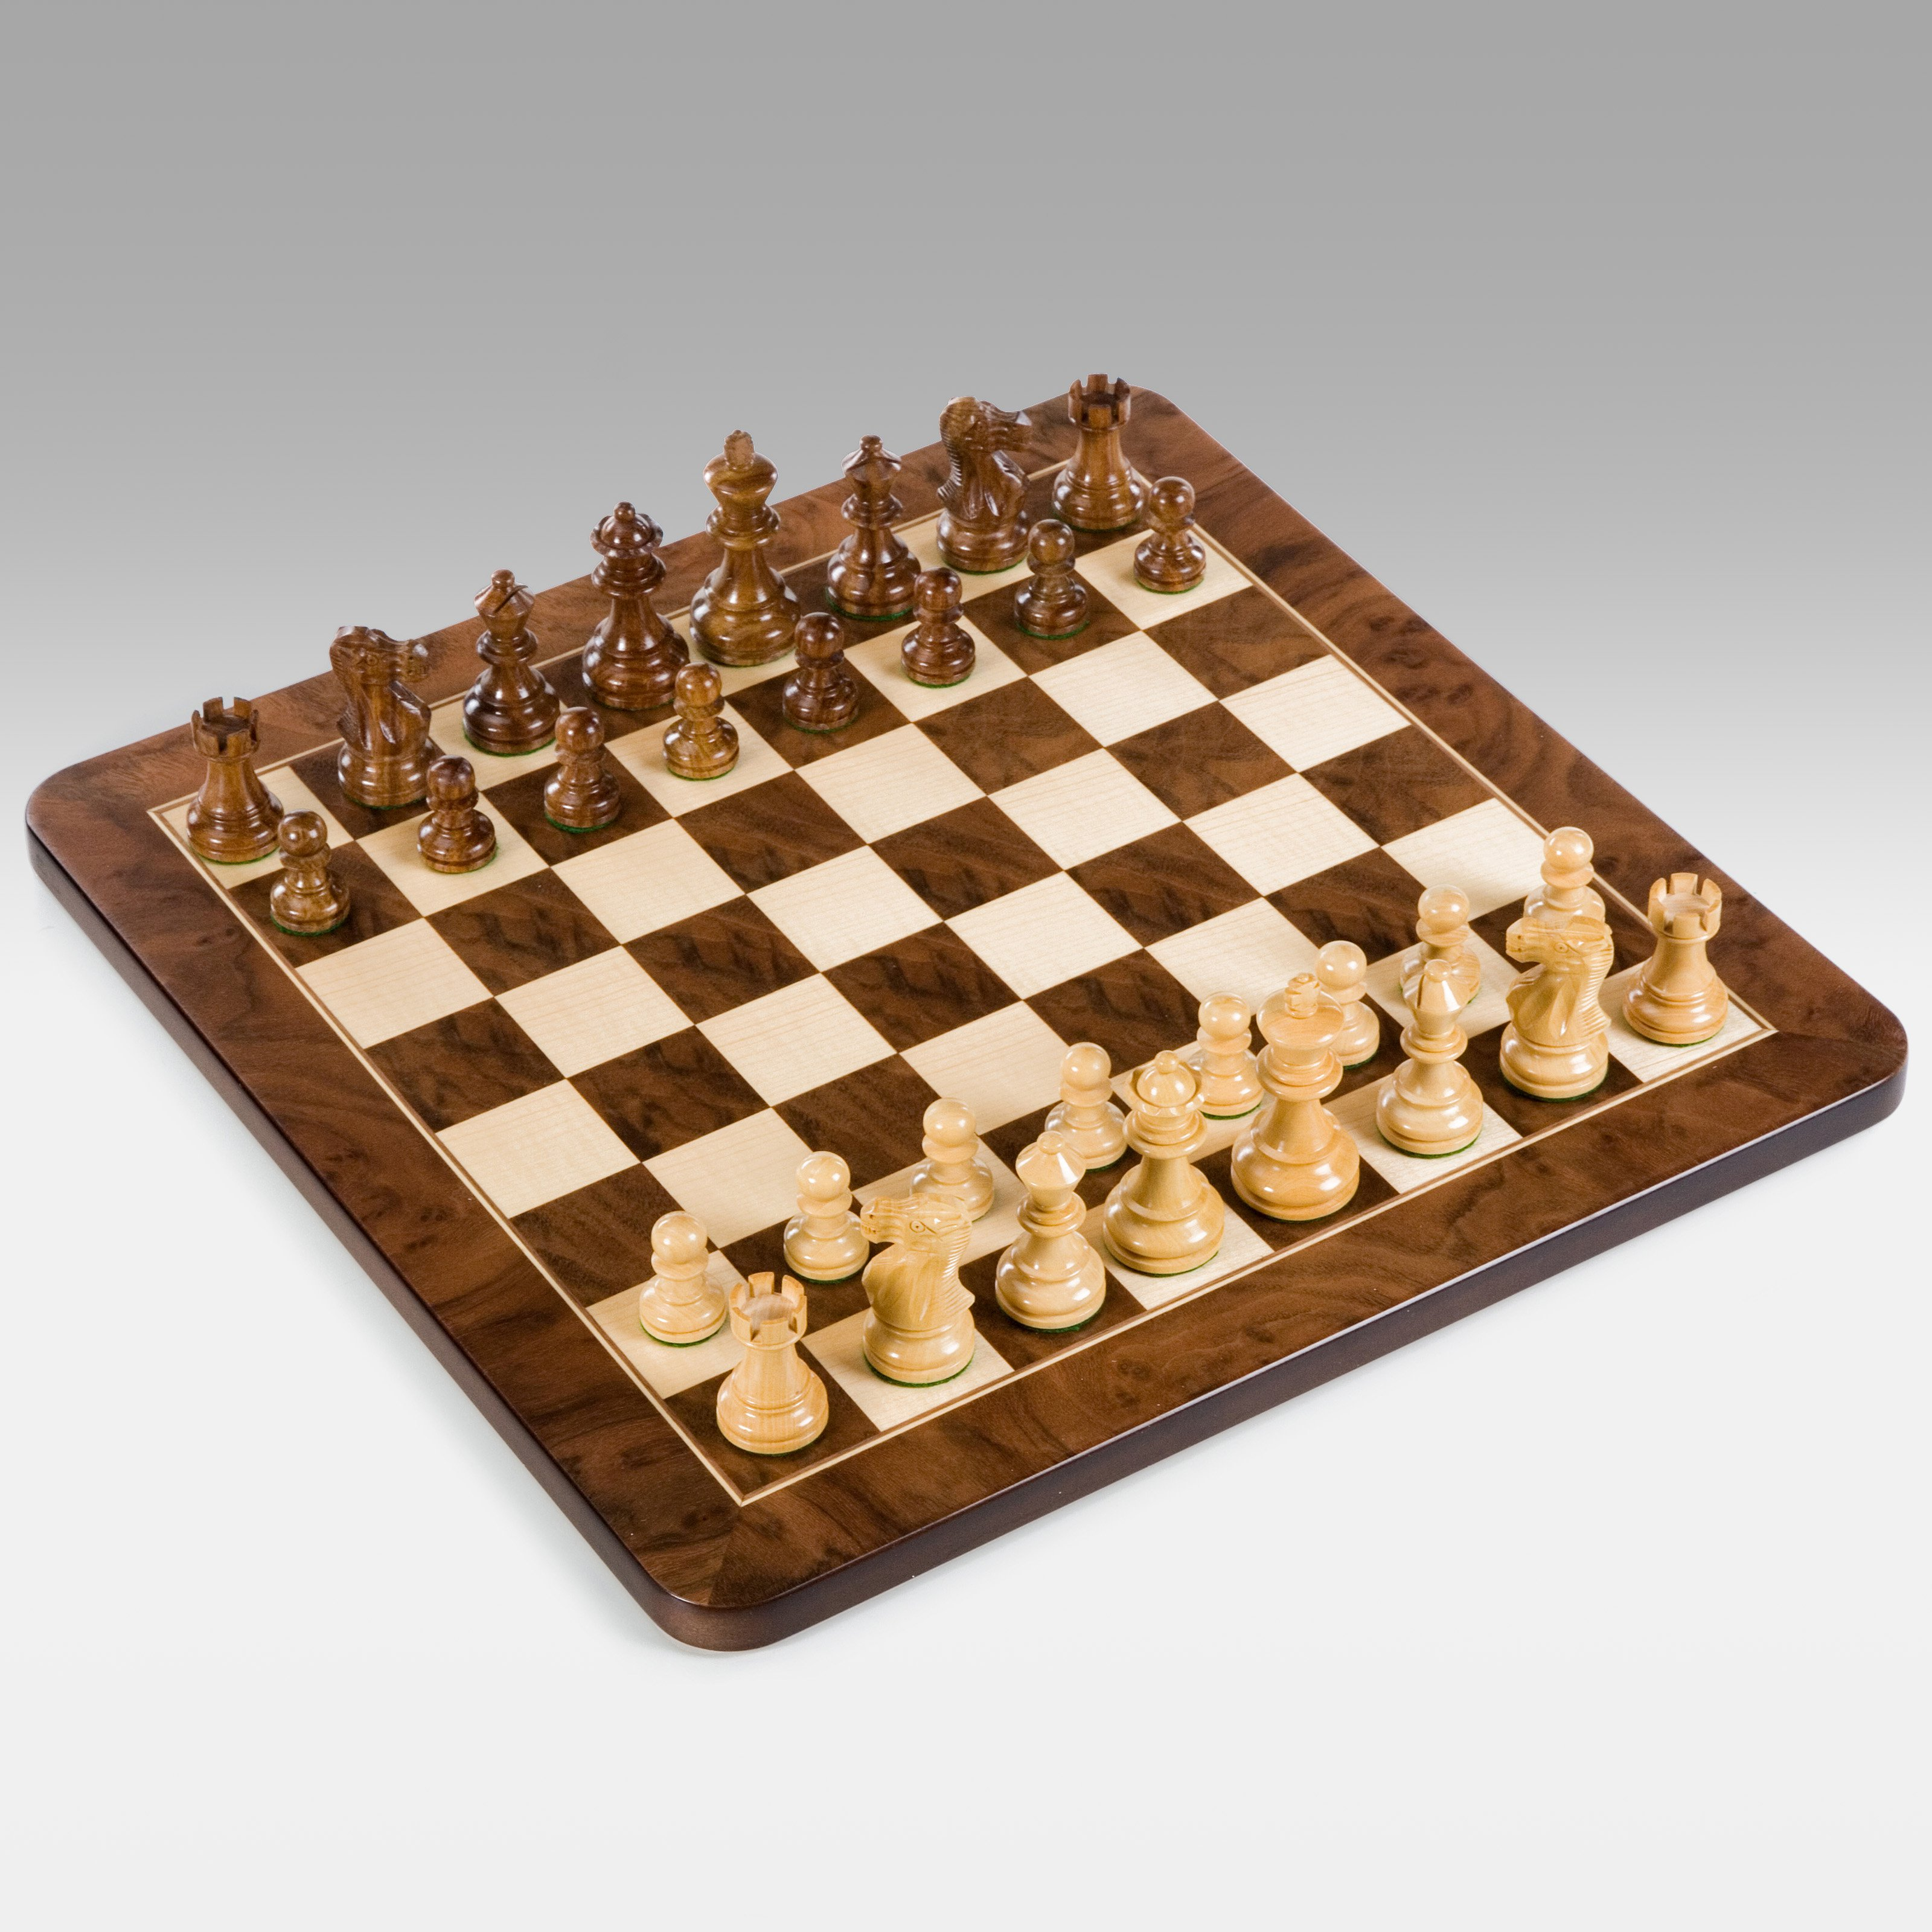 16-Inch English Wood Chess Set by Wood Expressions